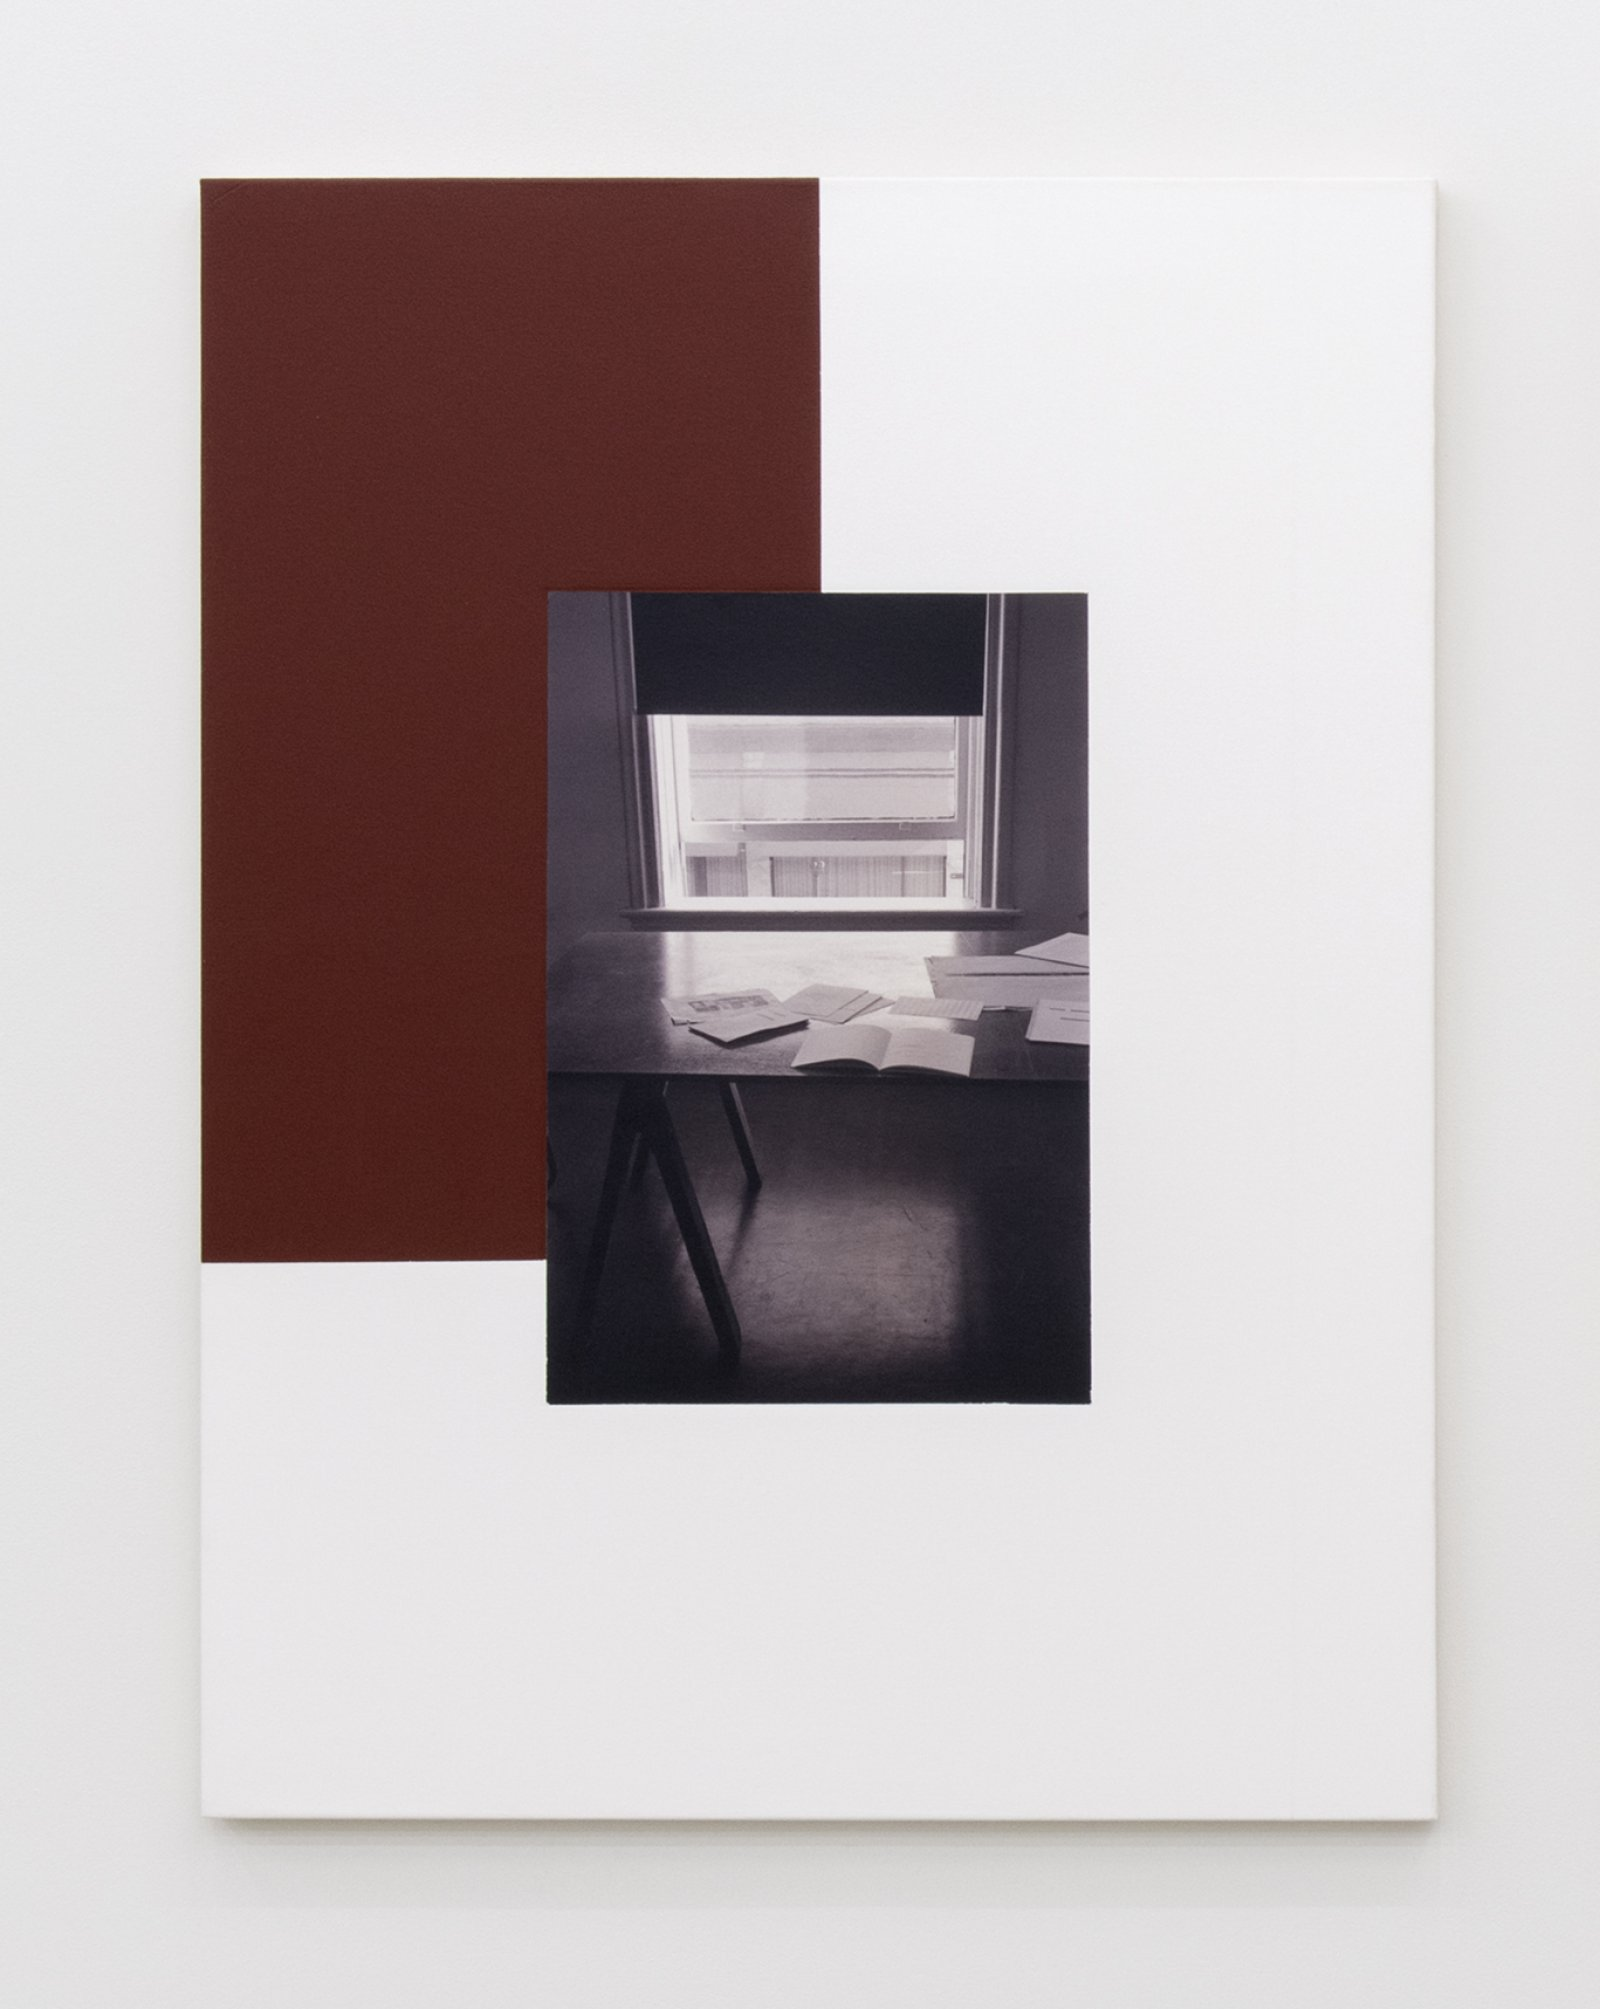 Ian Wallace, The Table (Image/Text) I, II (detail), 1979–2007, photolaminate and acrylic on canvas, 48 x 72 in. (122 x 183 cm)